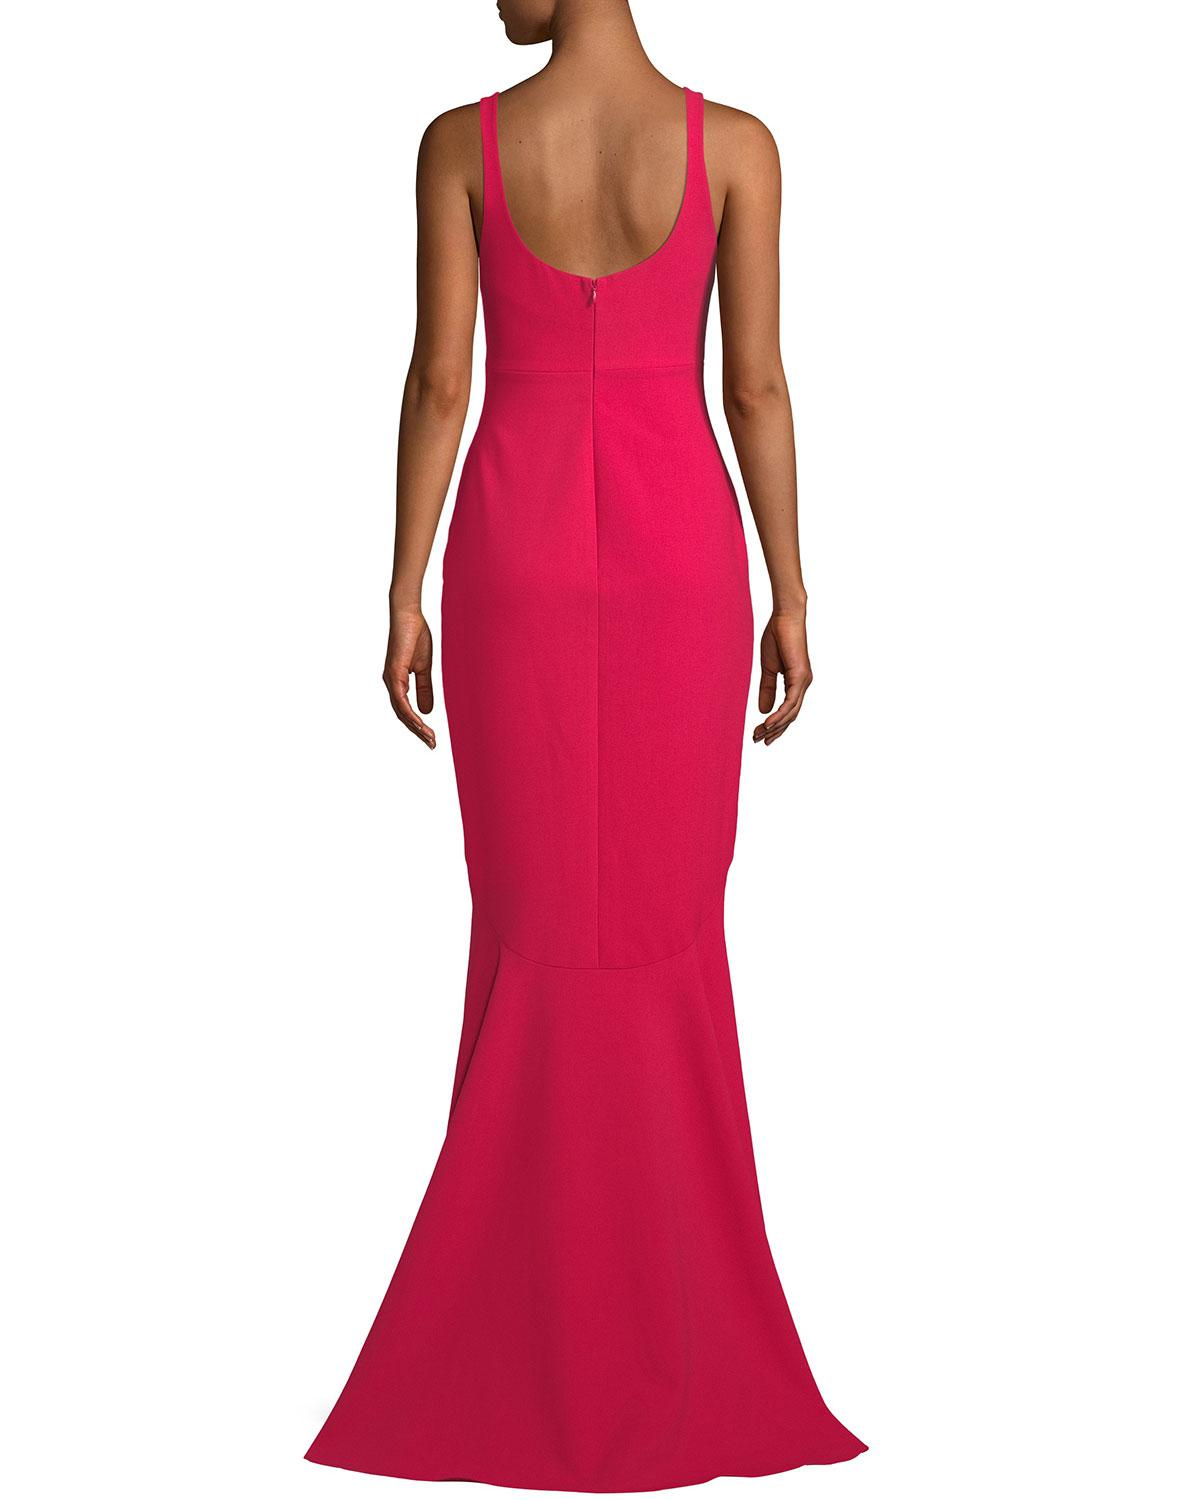 Lyst Cinq à Sept Sade Sleeveless Mermaid Gown In Red